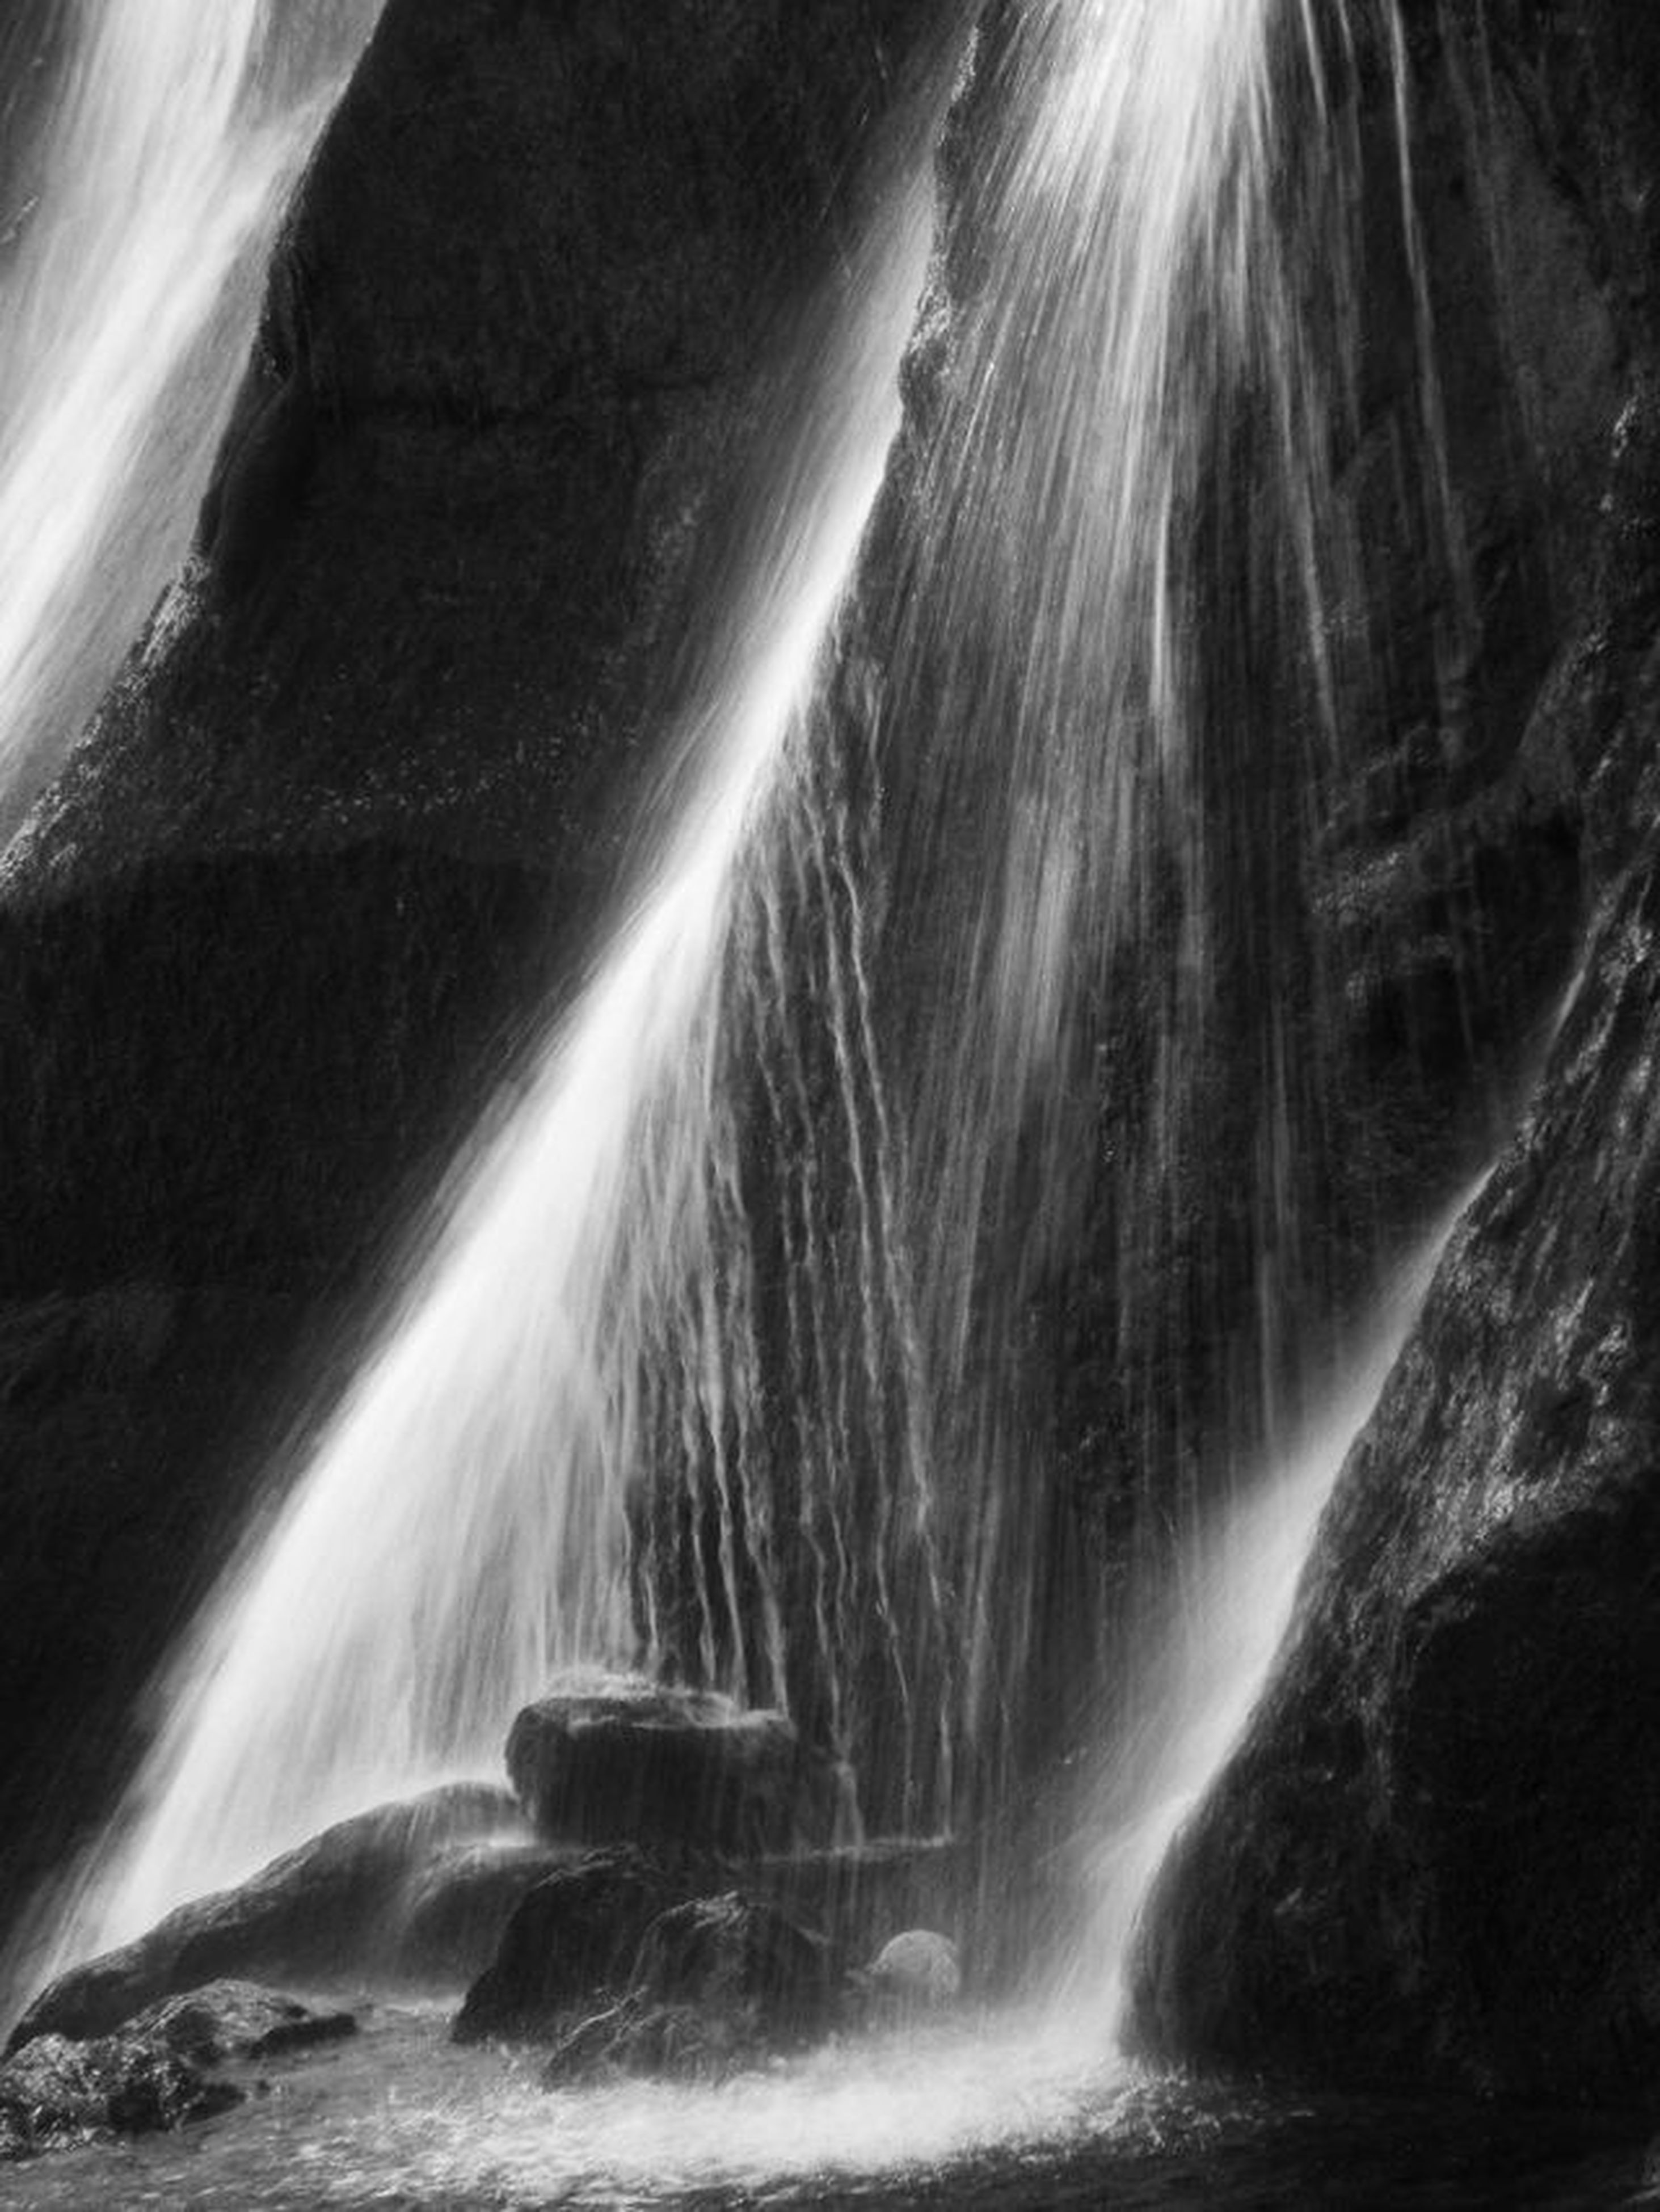 long exposure, motion, waterfall, flowing water, blurred motion, beauty in nature, scenics, nature, rock - object, low angle view, flowing, rock formation, forest, water, power in nature, tree, no people, tranquil scene, outdoors, speed